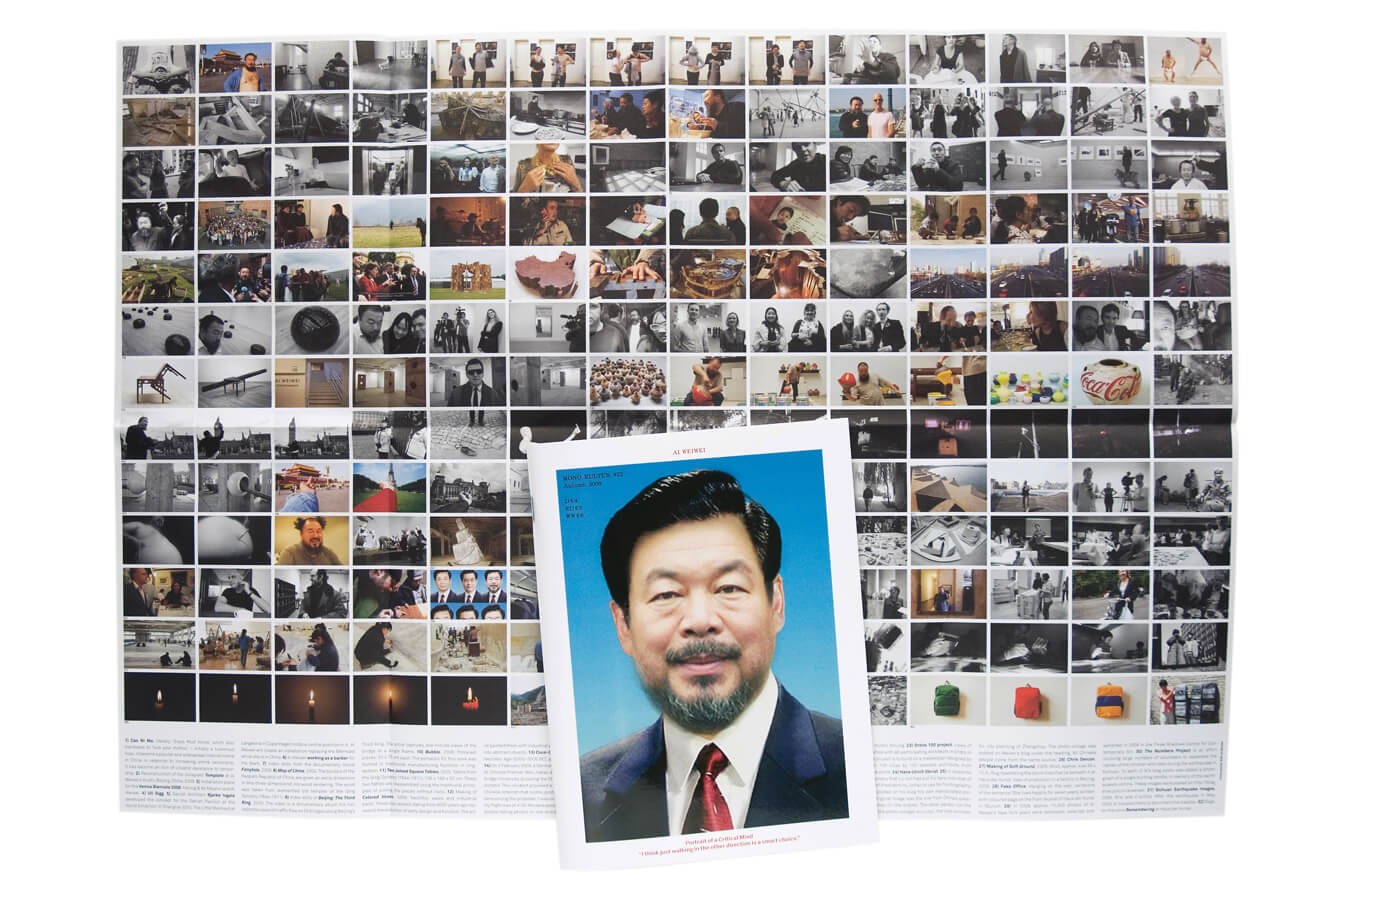 mono.kultur #22, Ai Weiwei: Portrait Of A Critical Mind